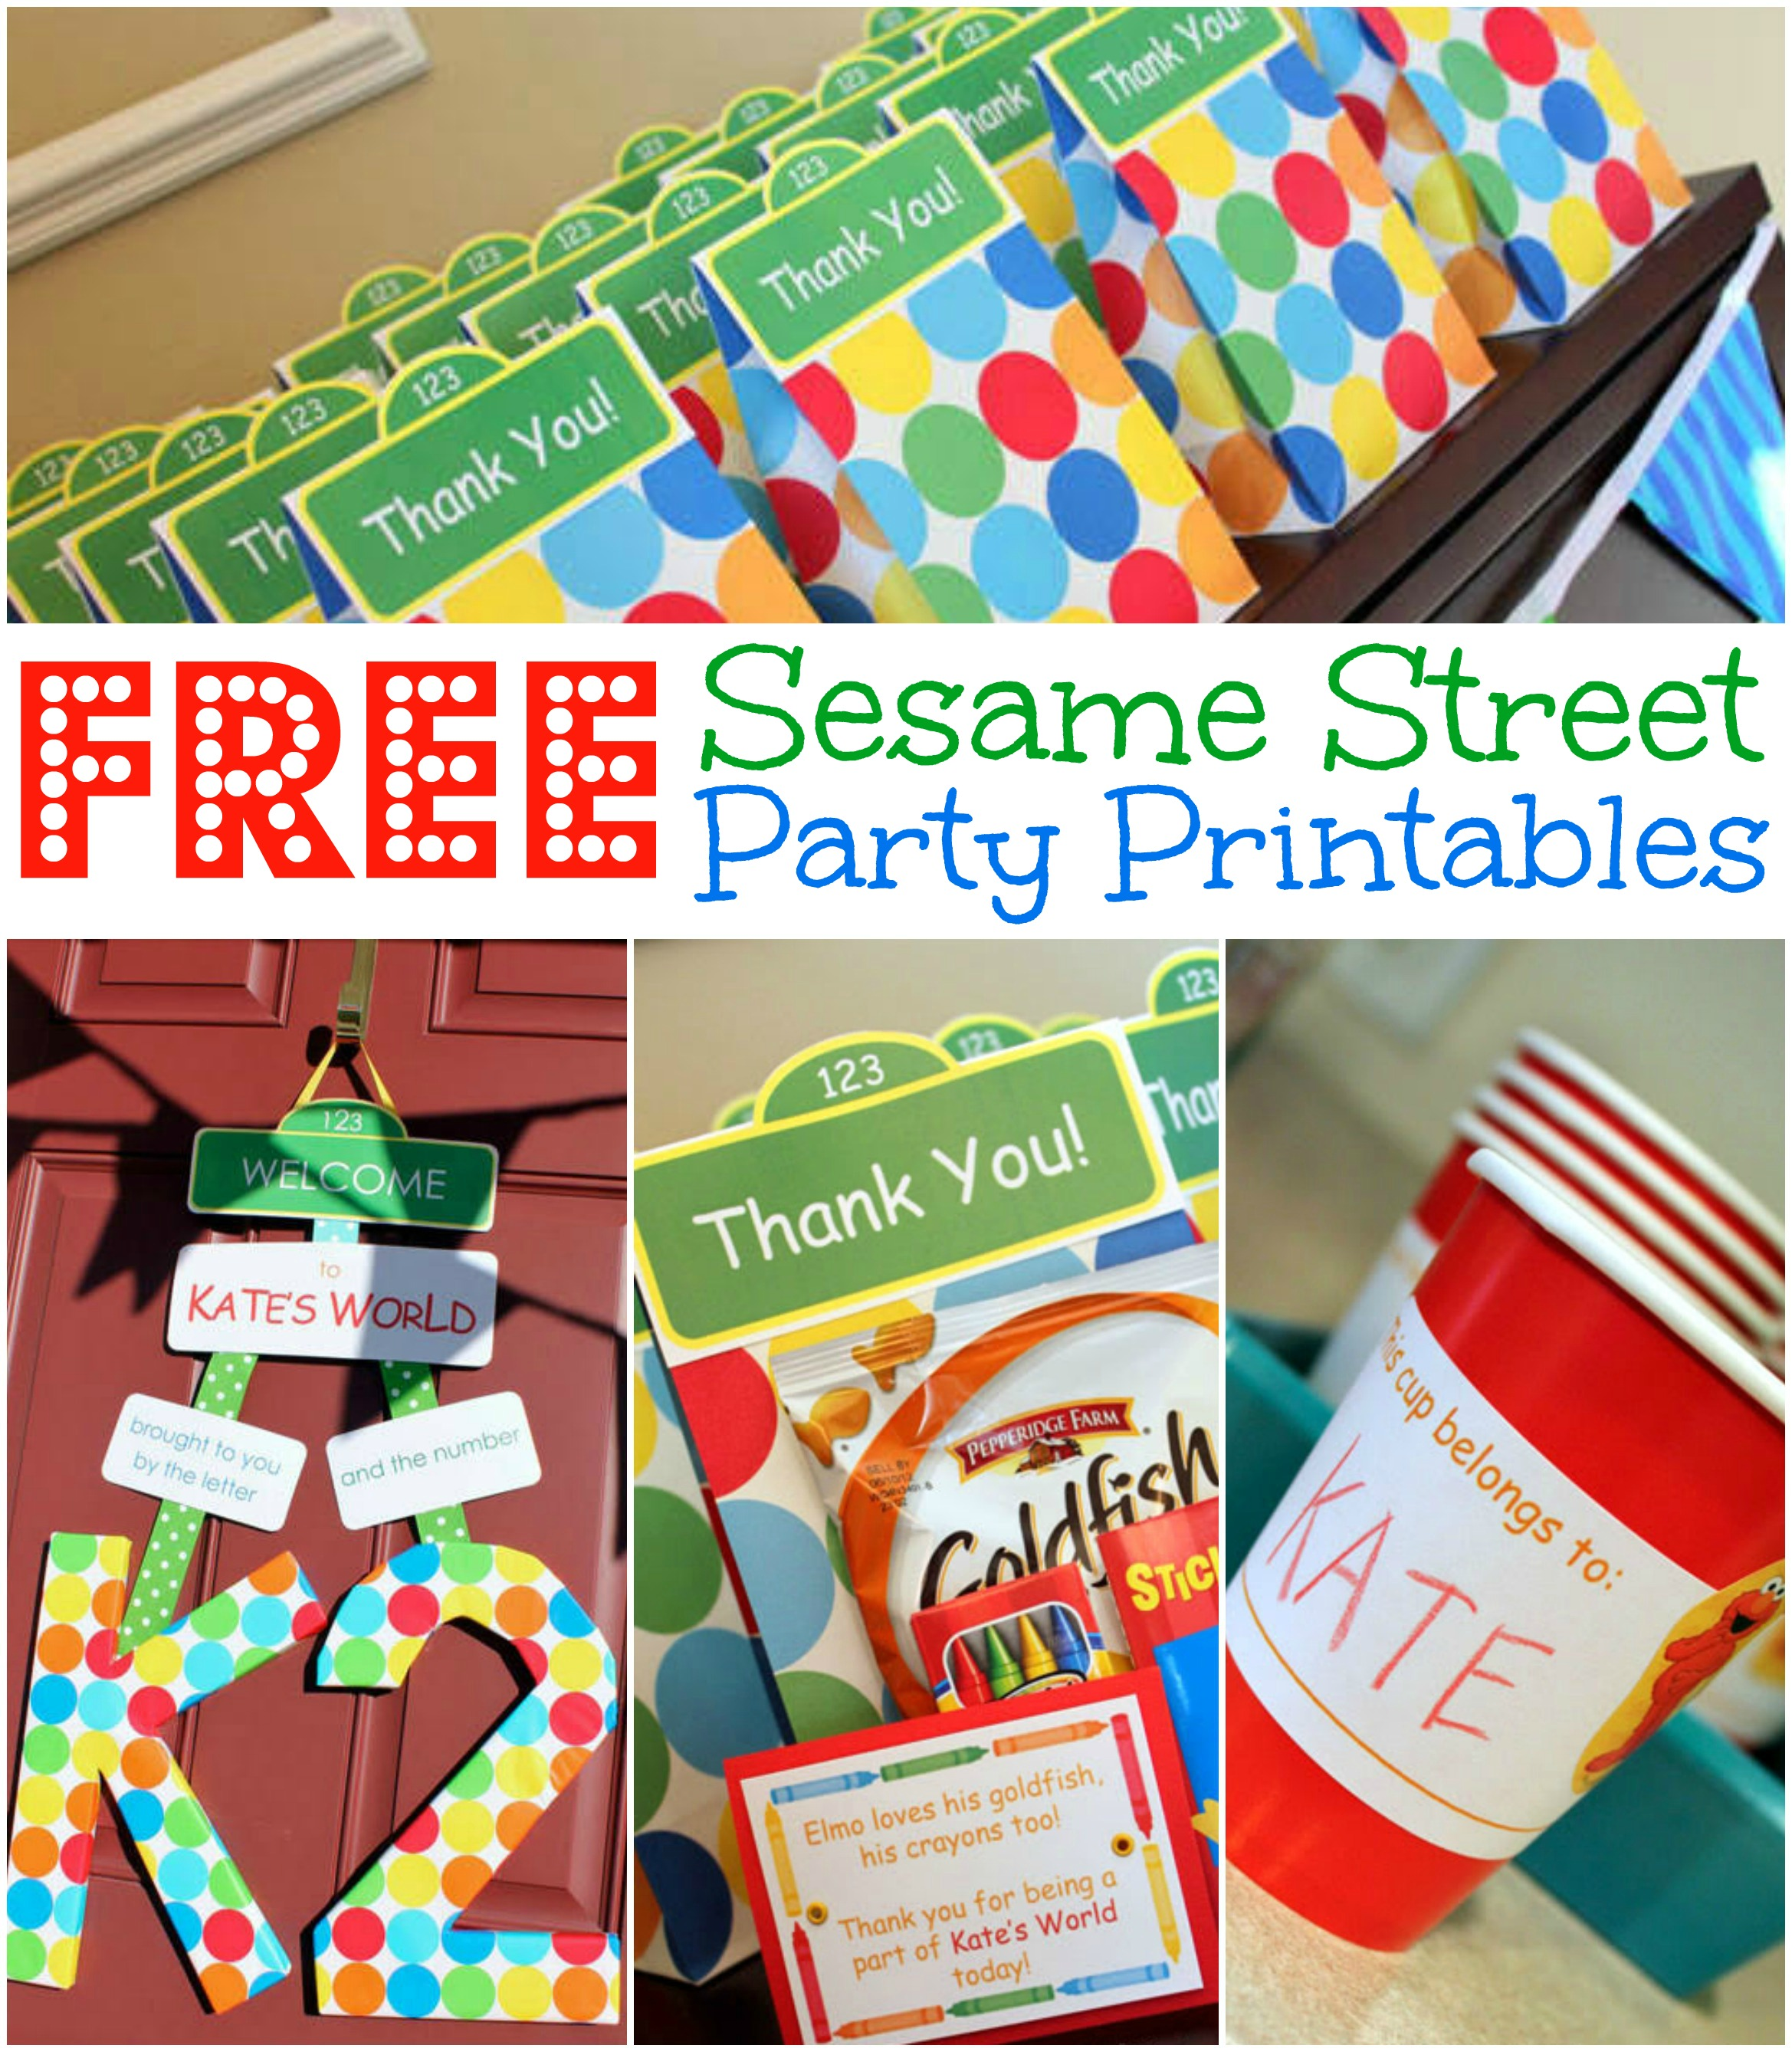 7 Images of Sesame Street Printables Free